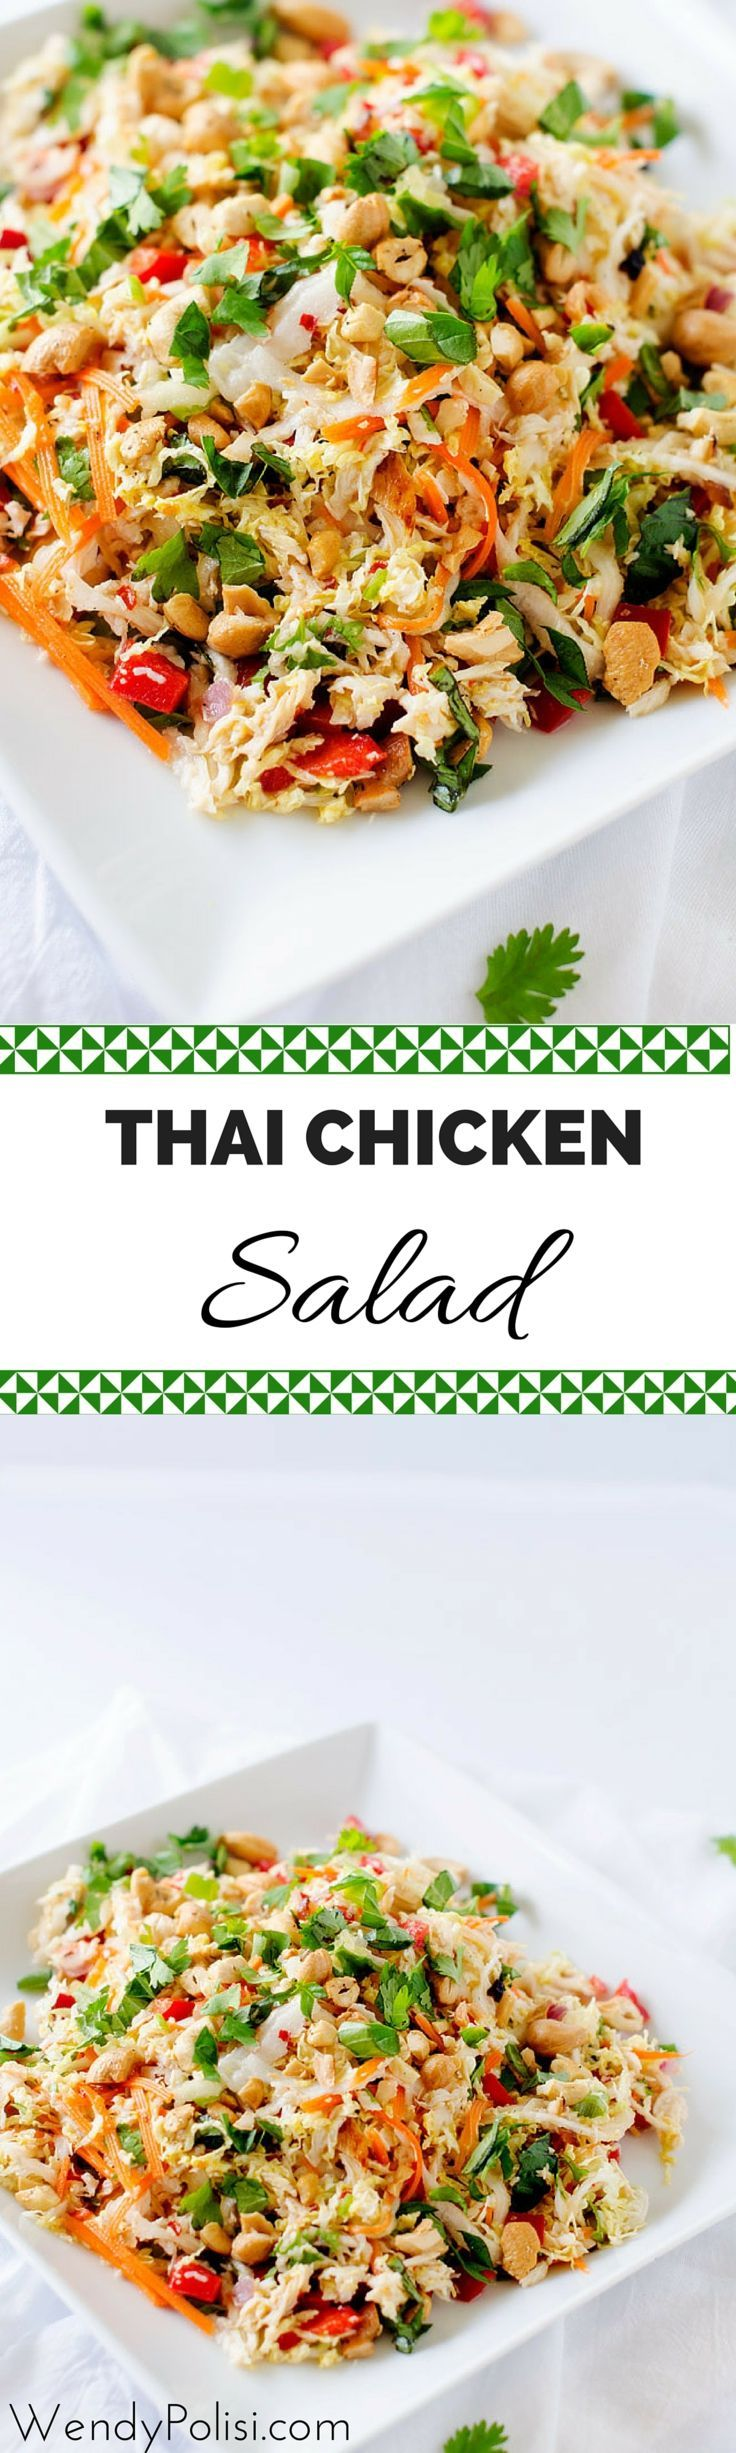 Thai Chicken Salad with Ginger Lime Dressing - This healthy salad recipe is packed with flavor and texture! Naturally gluten free and peanut free, this is a healthy meal you won't want to miss.- WendyPolisi.com via @Wendy Polisi | Gluten Free Recipes + Healthy Natural Living